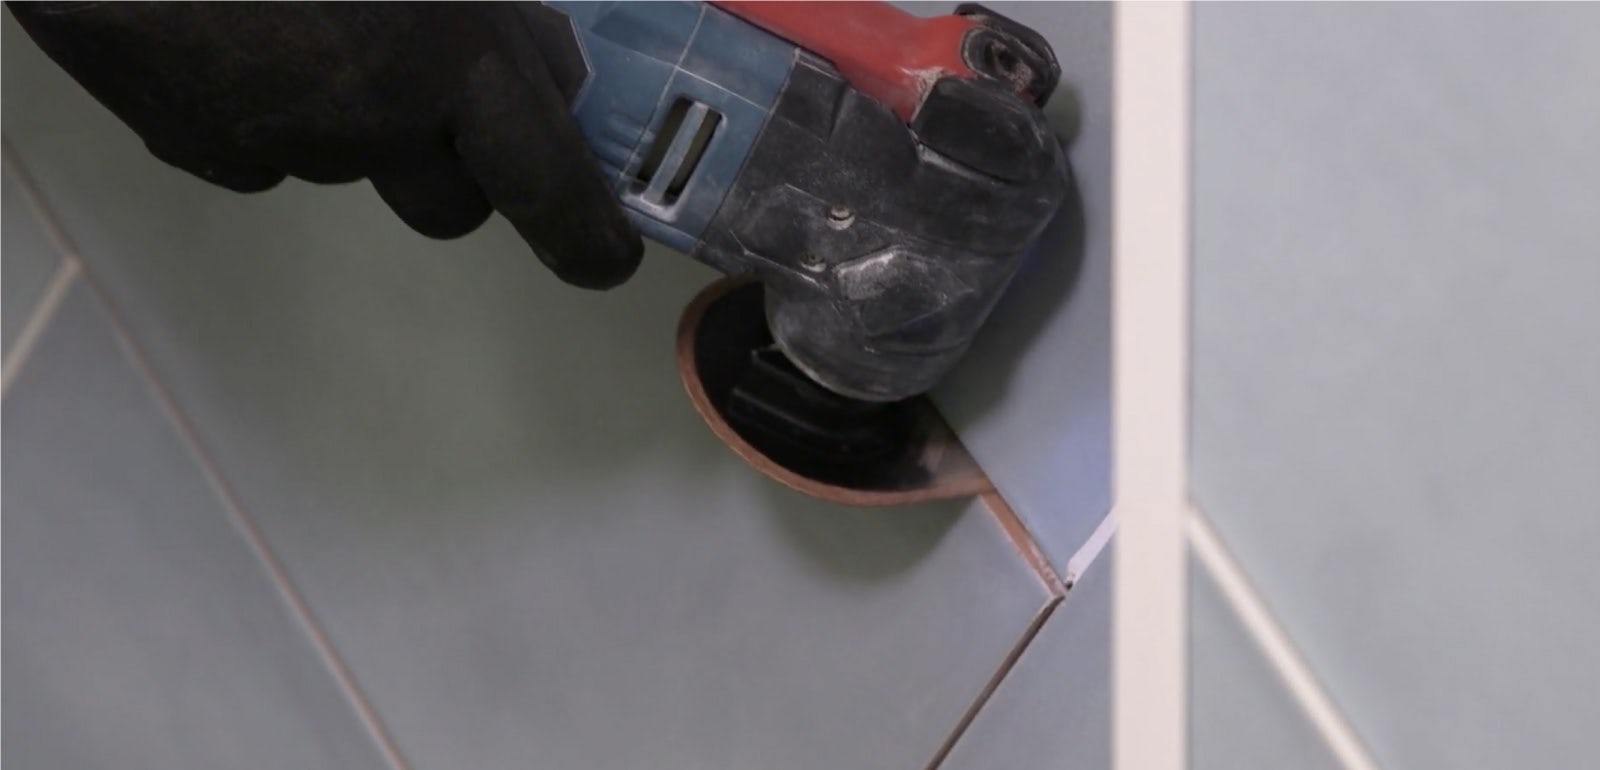 Modern Fixes: How to remove old grout from tiles